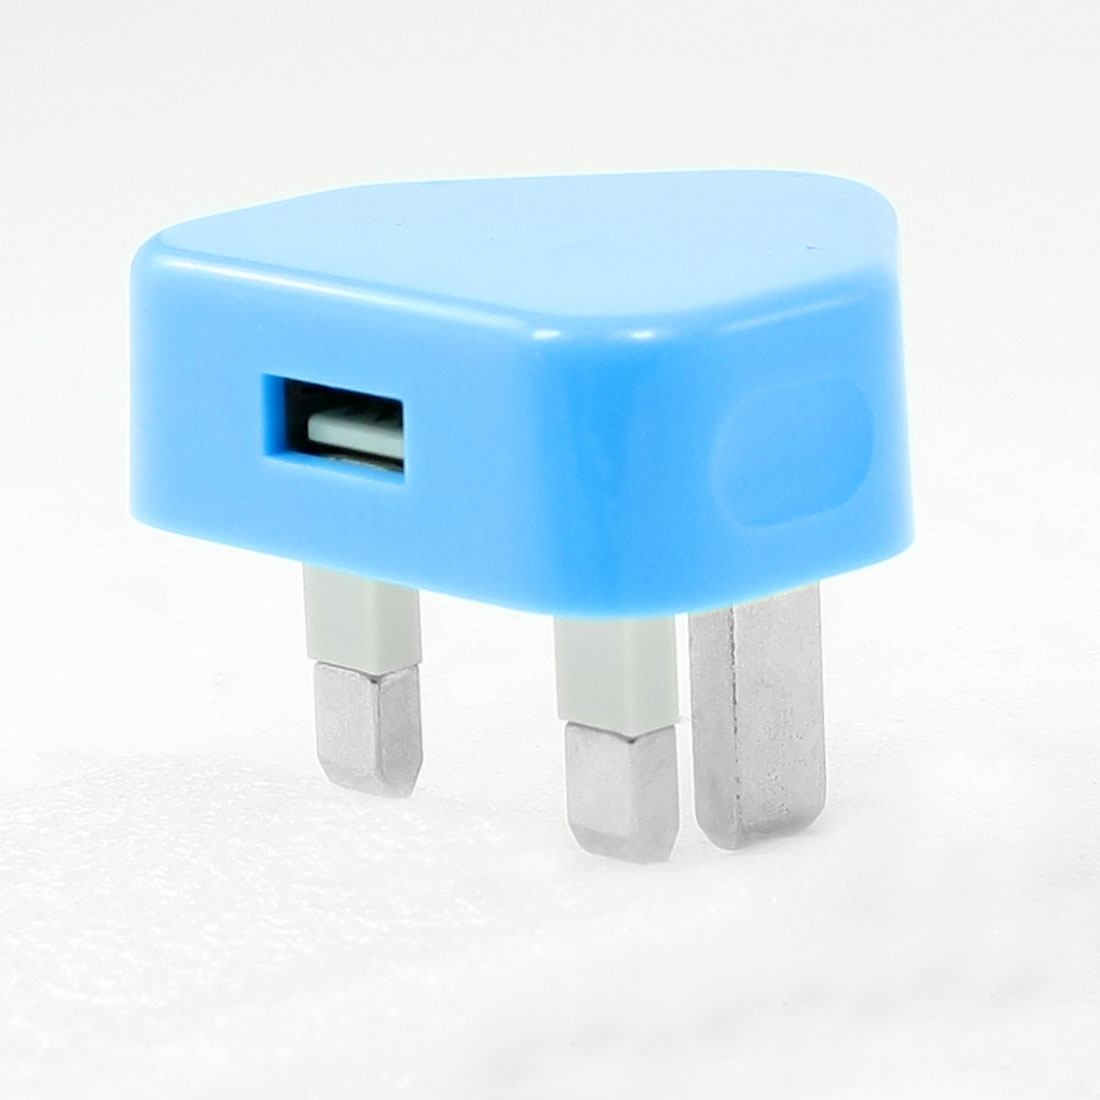 100-240V Plastic Heart Shell UK Stylish AC USB Charger Adapter Plug Blue